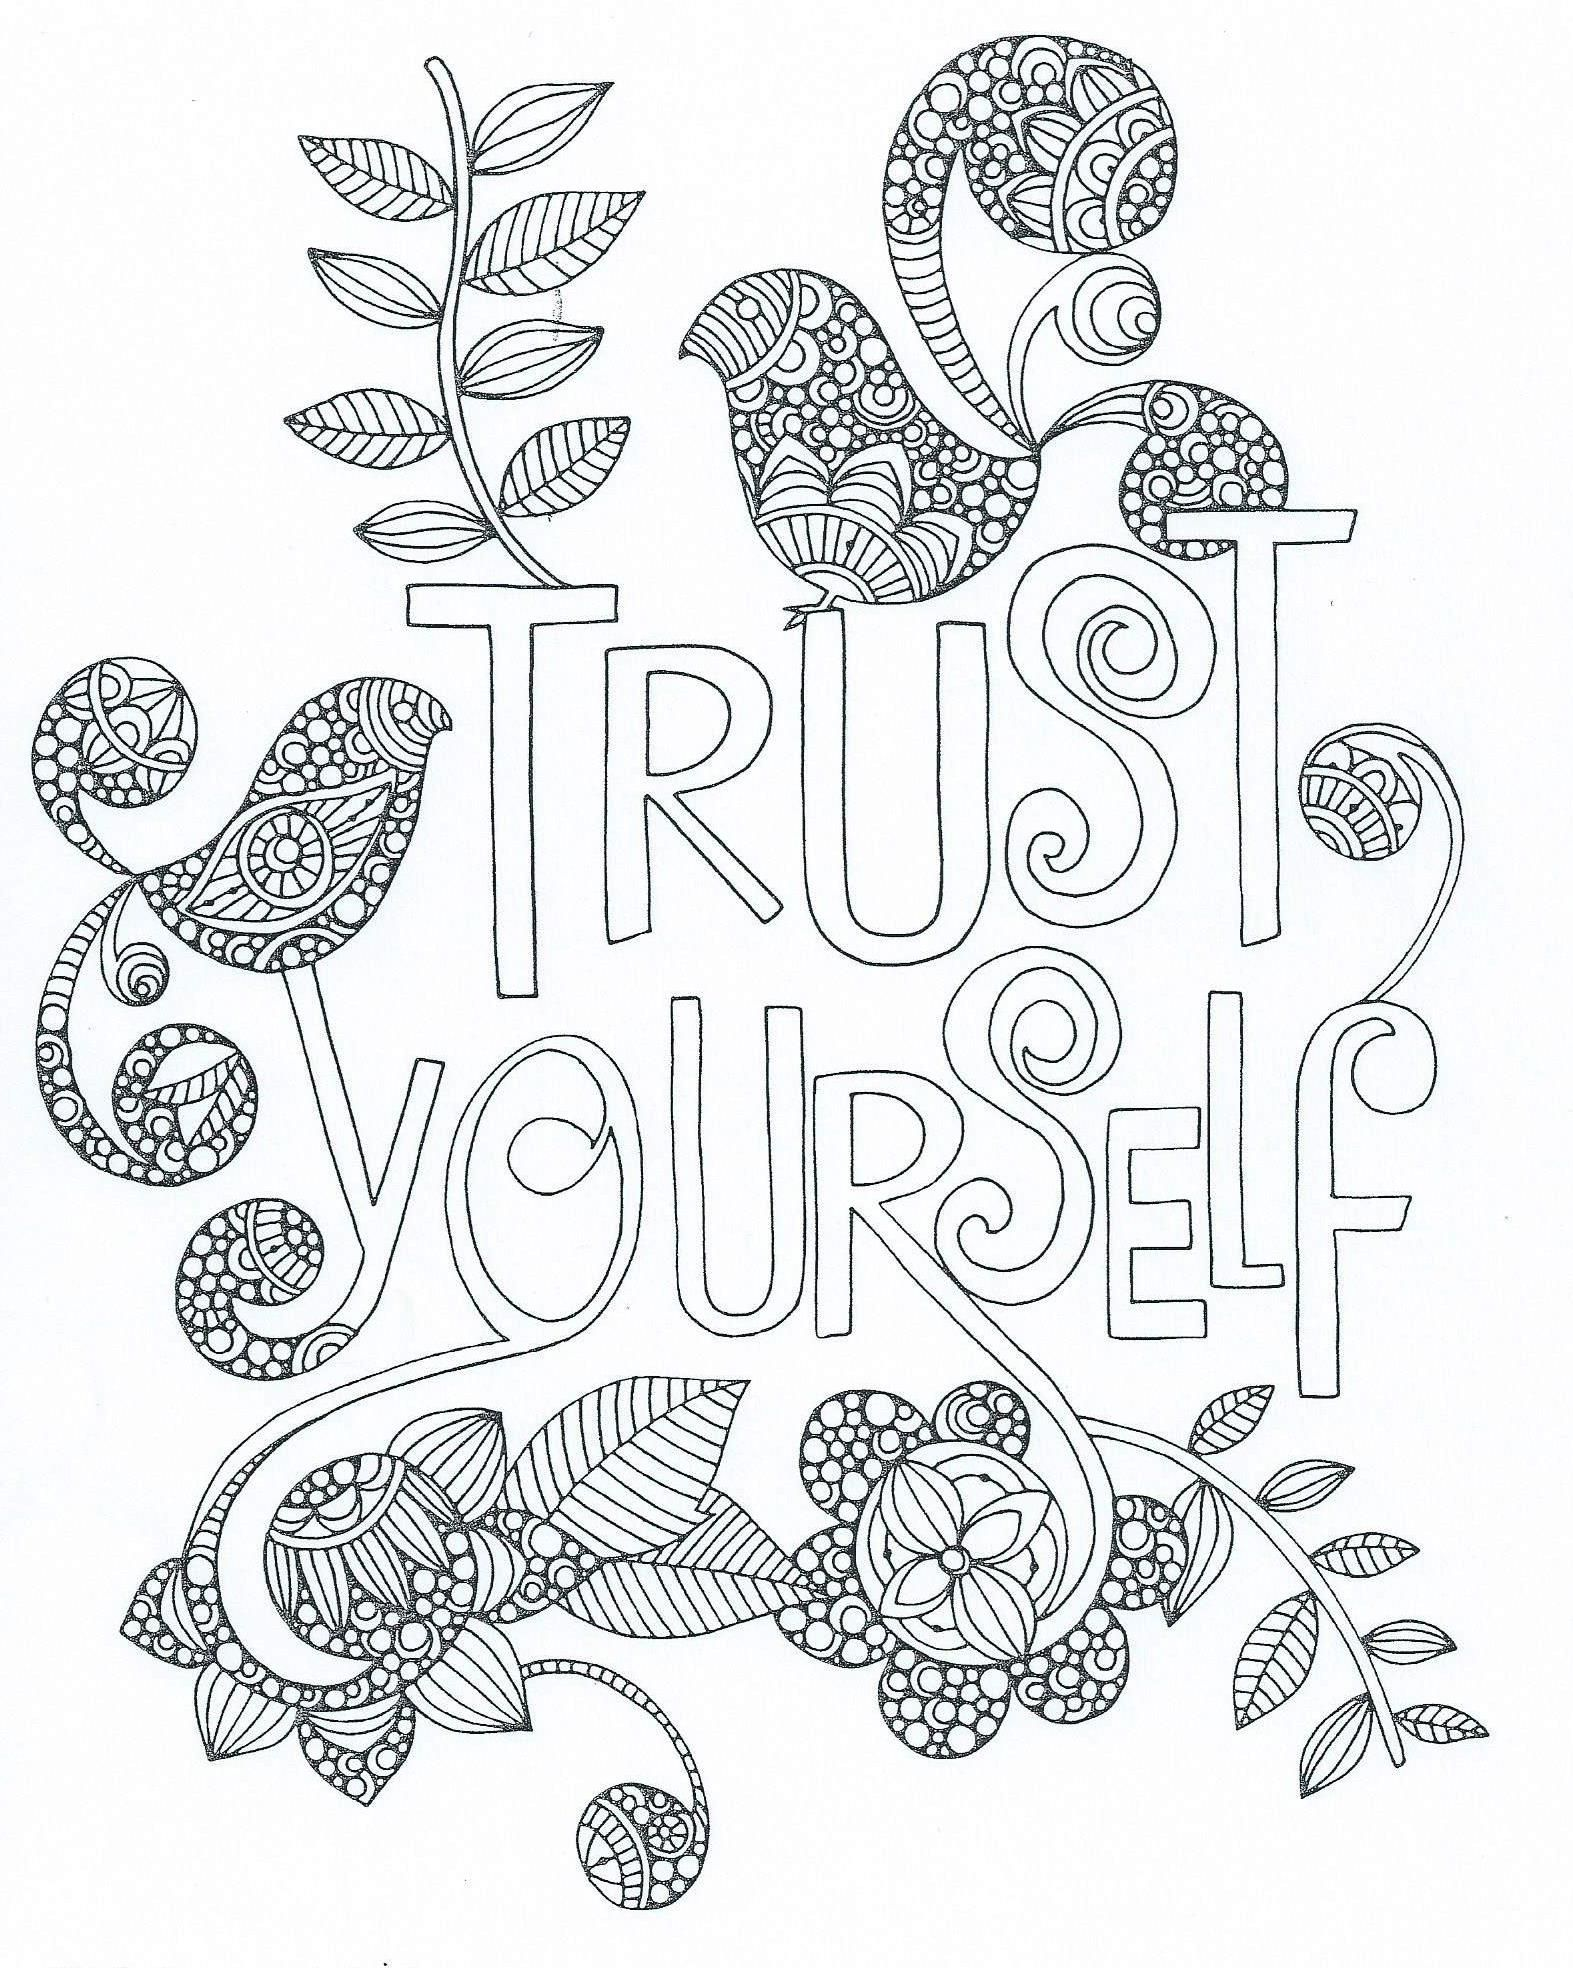 Encouragement Sheets Coloring Pages